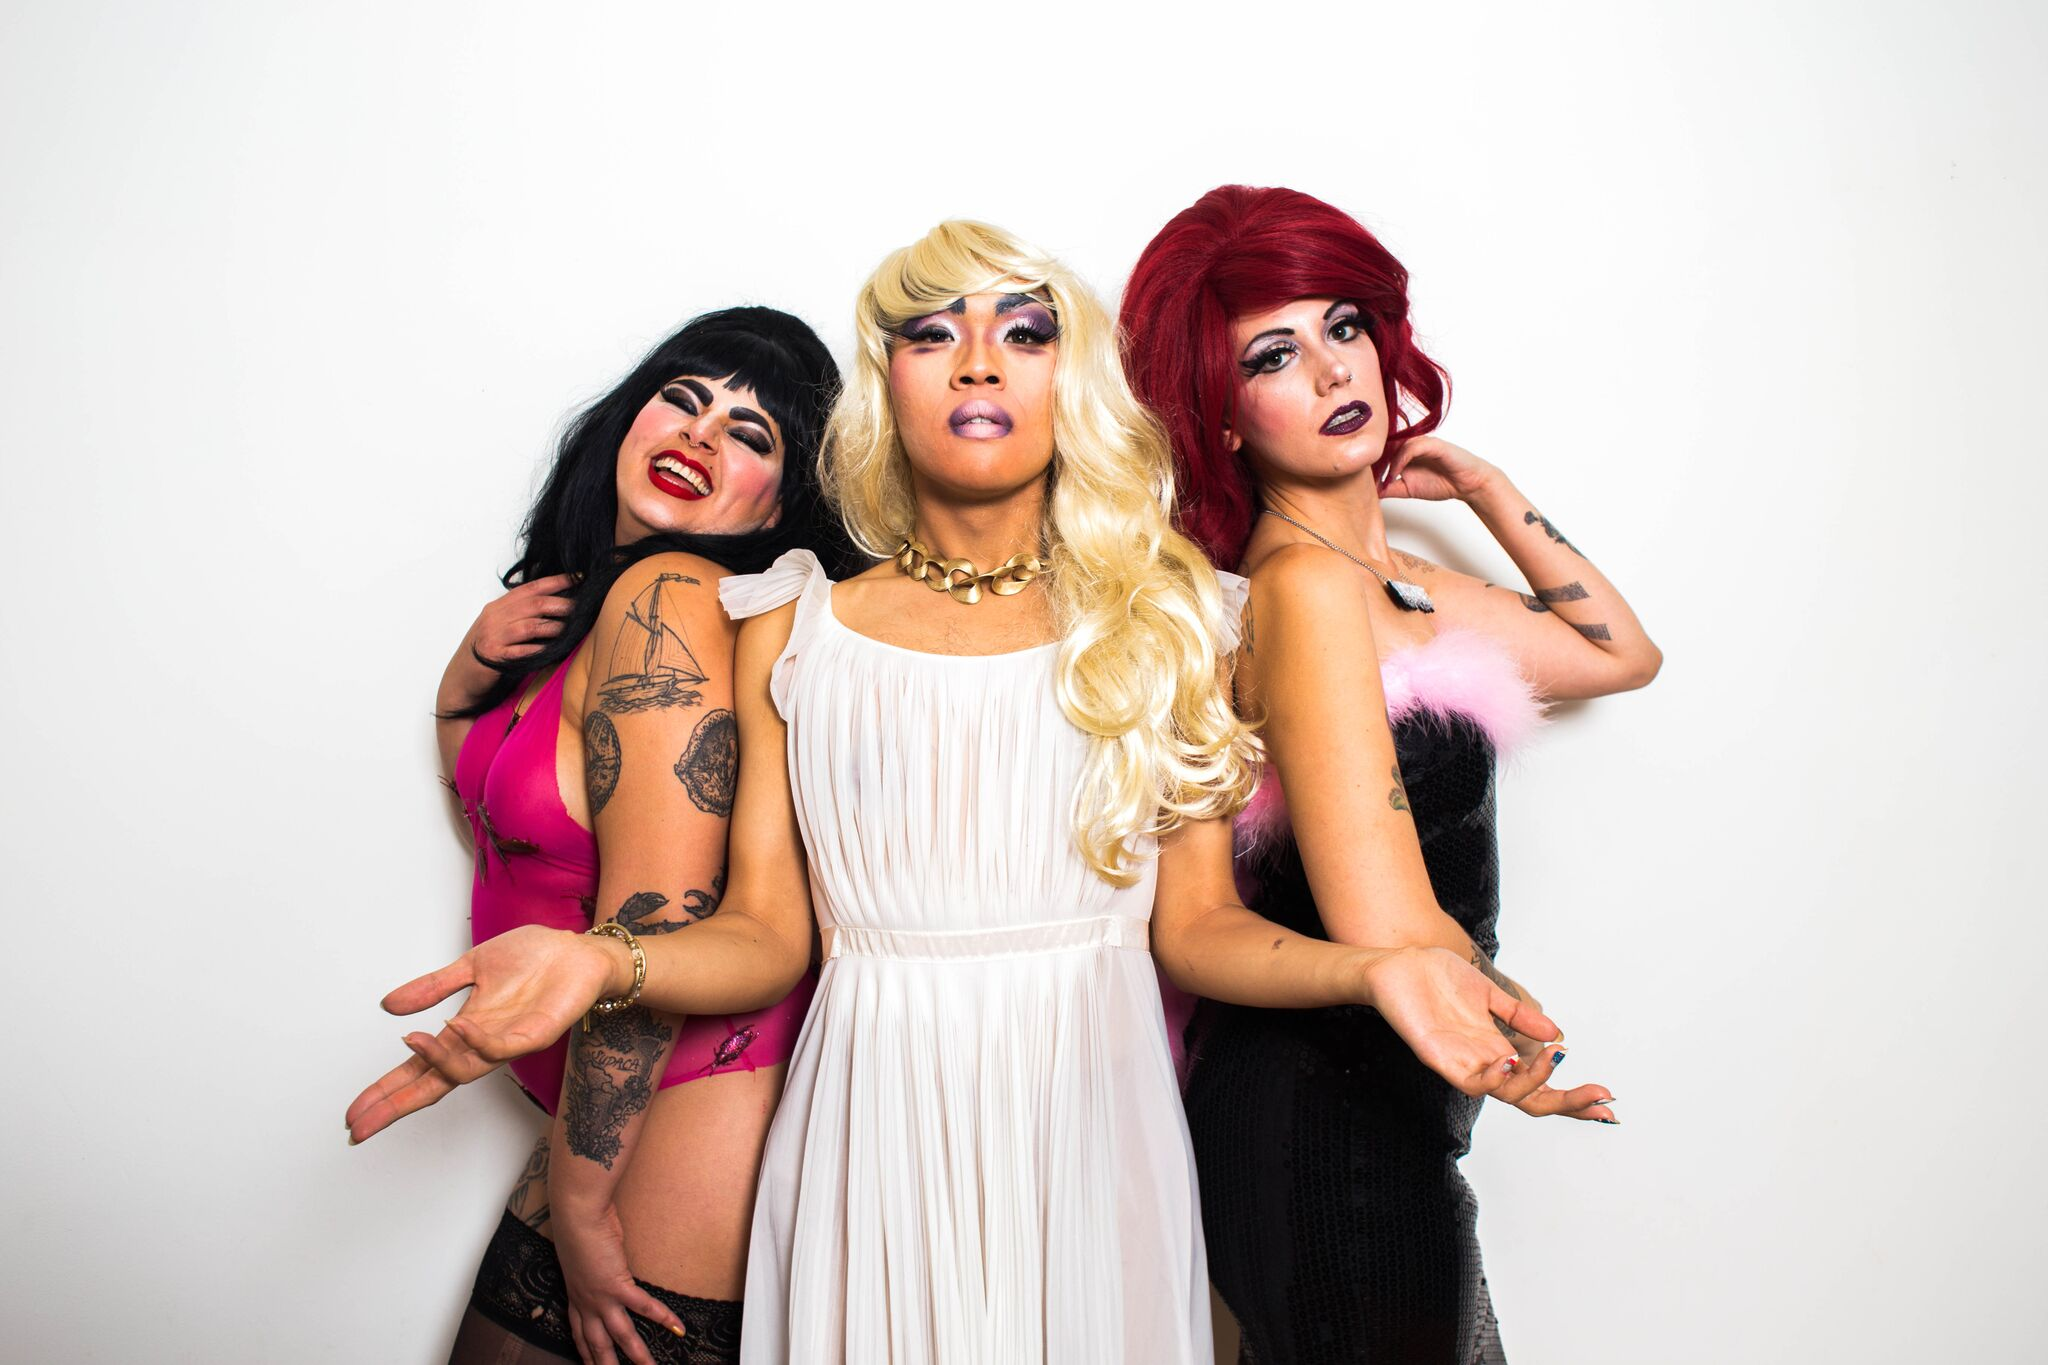 Divina, Miss Malice and Pearl